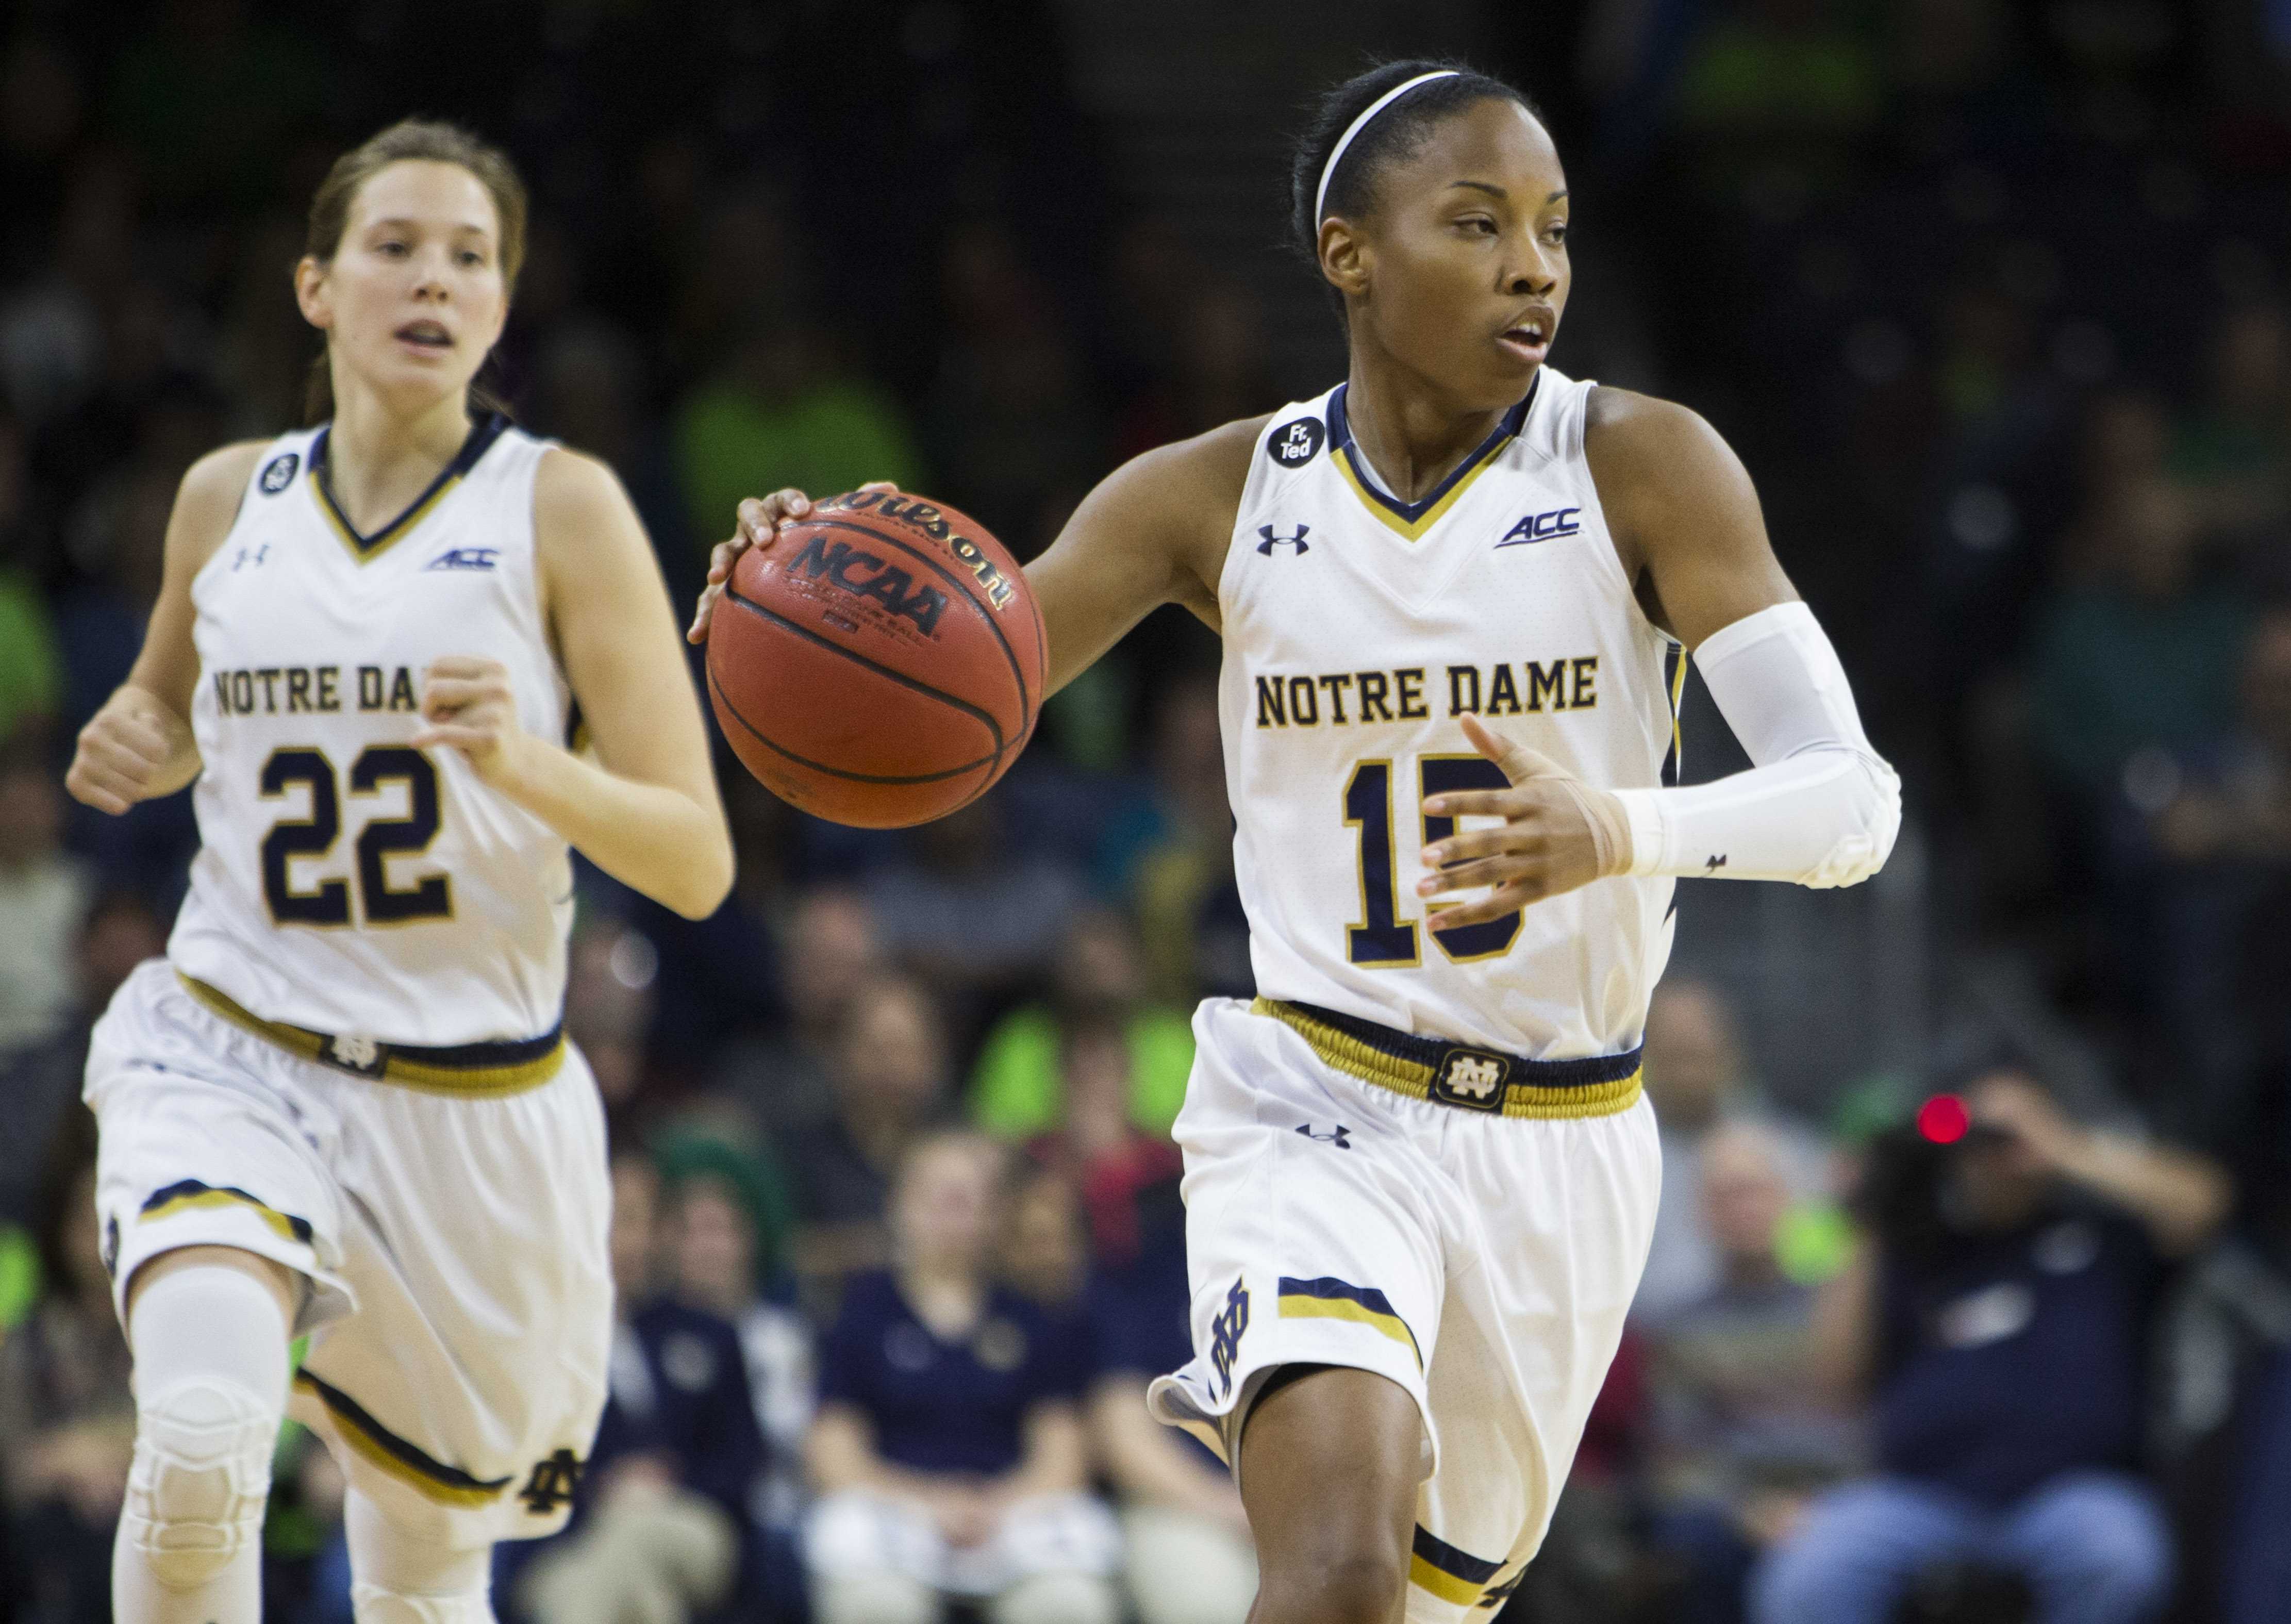 FILE - In this Feb. 27, 2016, file photo, Notre Dame's Lindsay Allen (15) brings the ball downcourt in front of teammate Madison Cable (22) during Notre Dame's 70-58 win against Boston College in an NCAA college basketball game, in South Bend, Ind. The tw